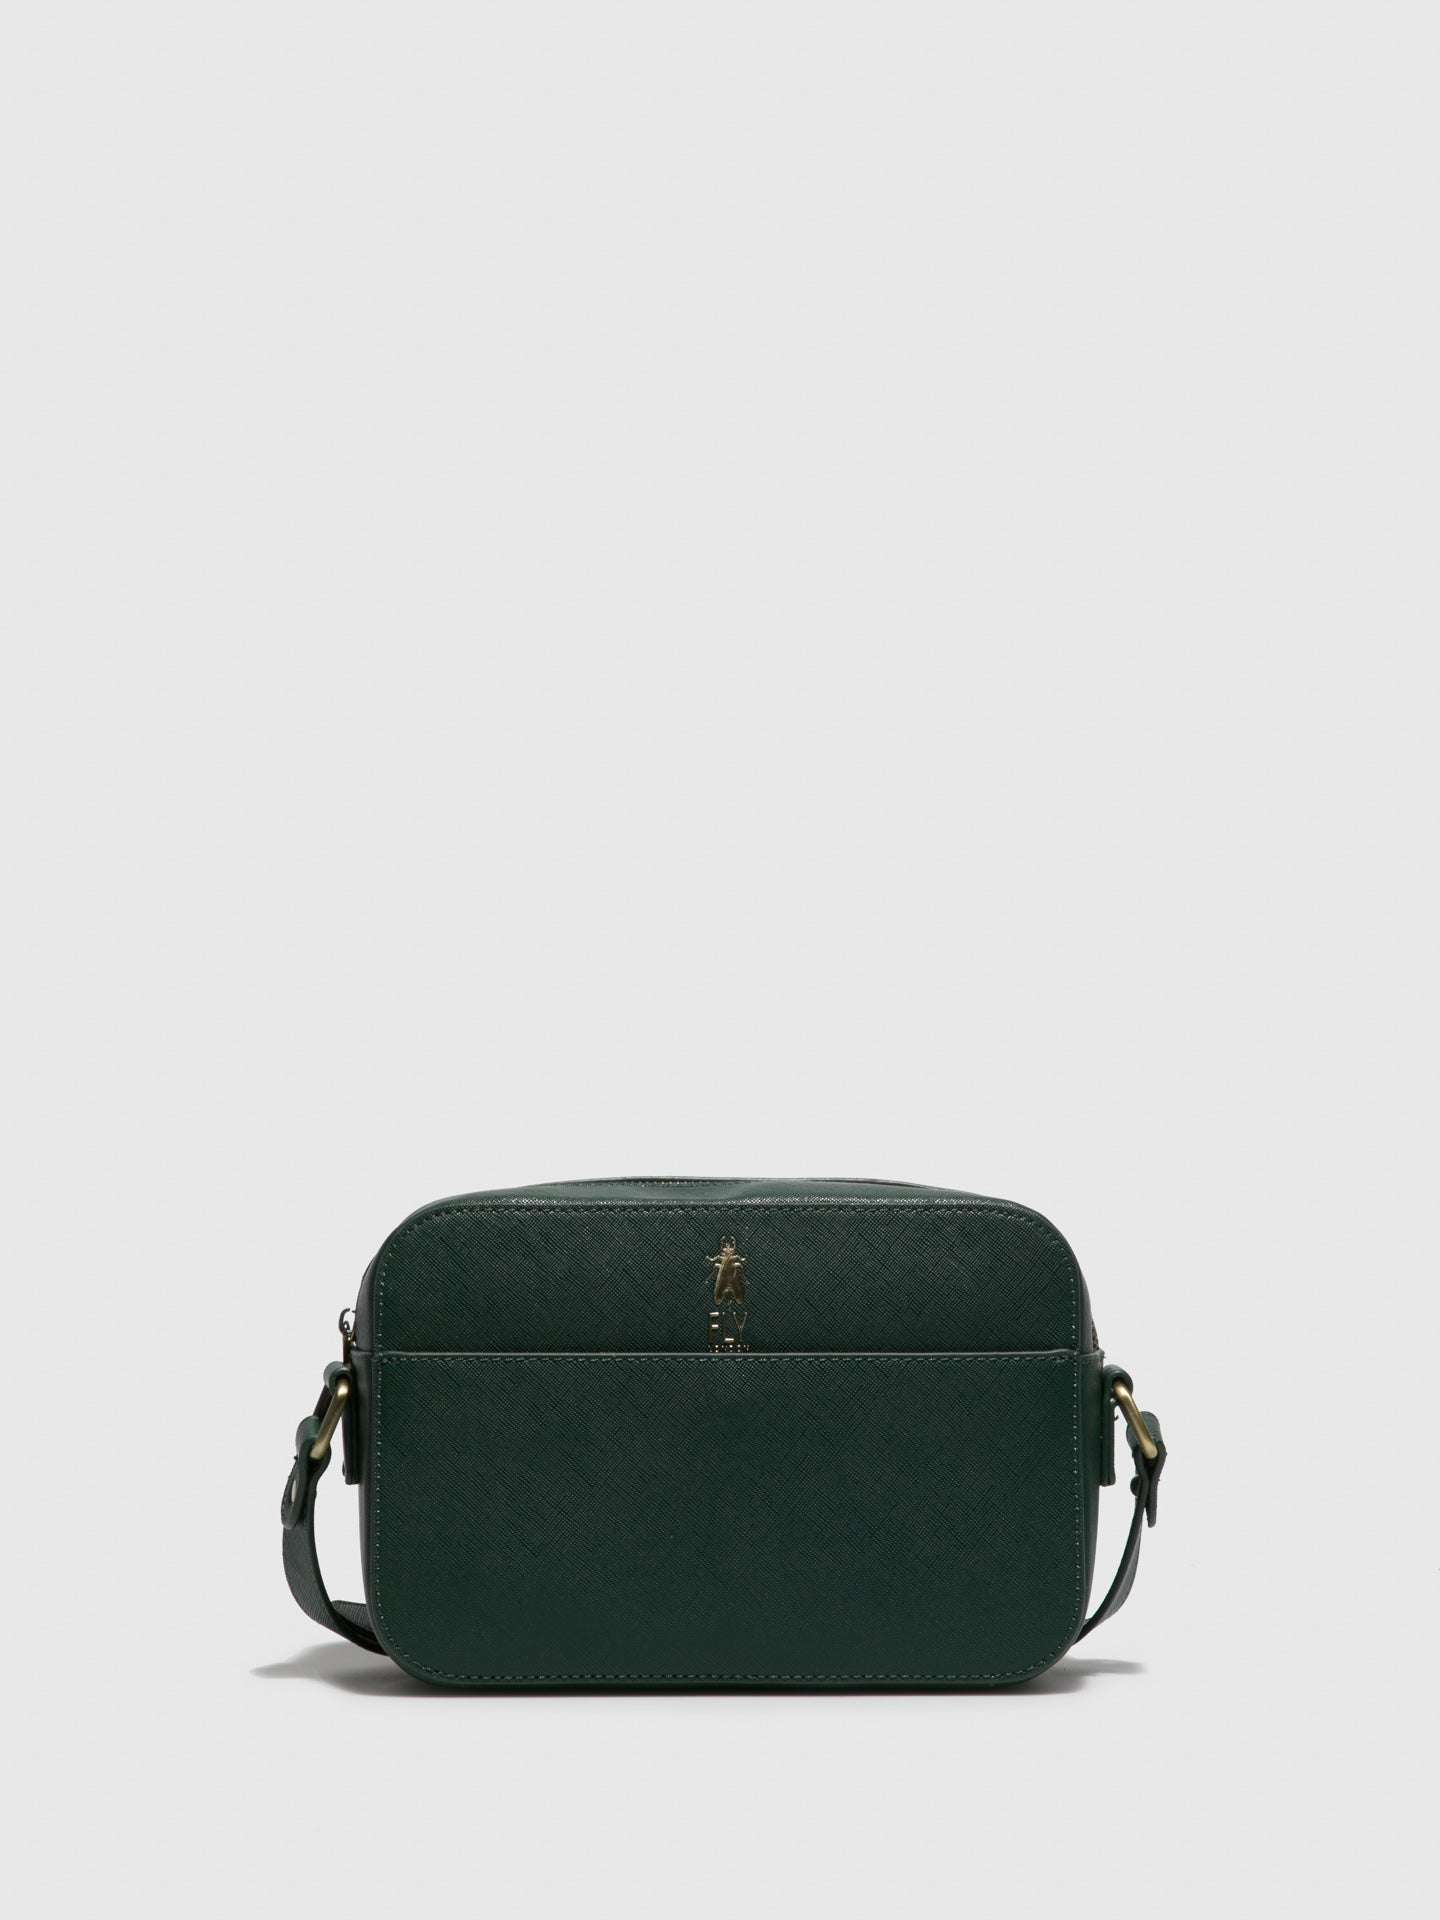 Fly London Shoulder Bags ARES692FLY PHOBOS DK GREEN